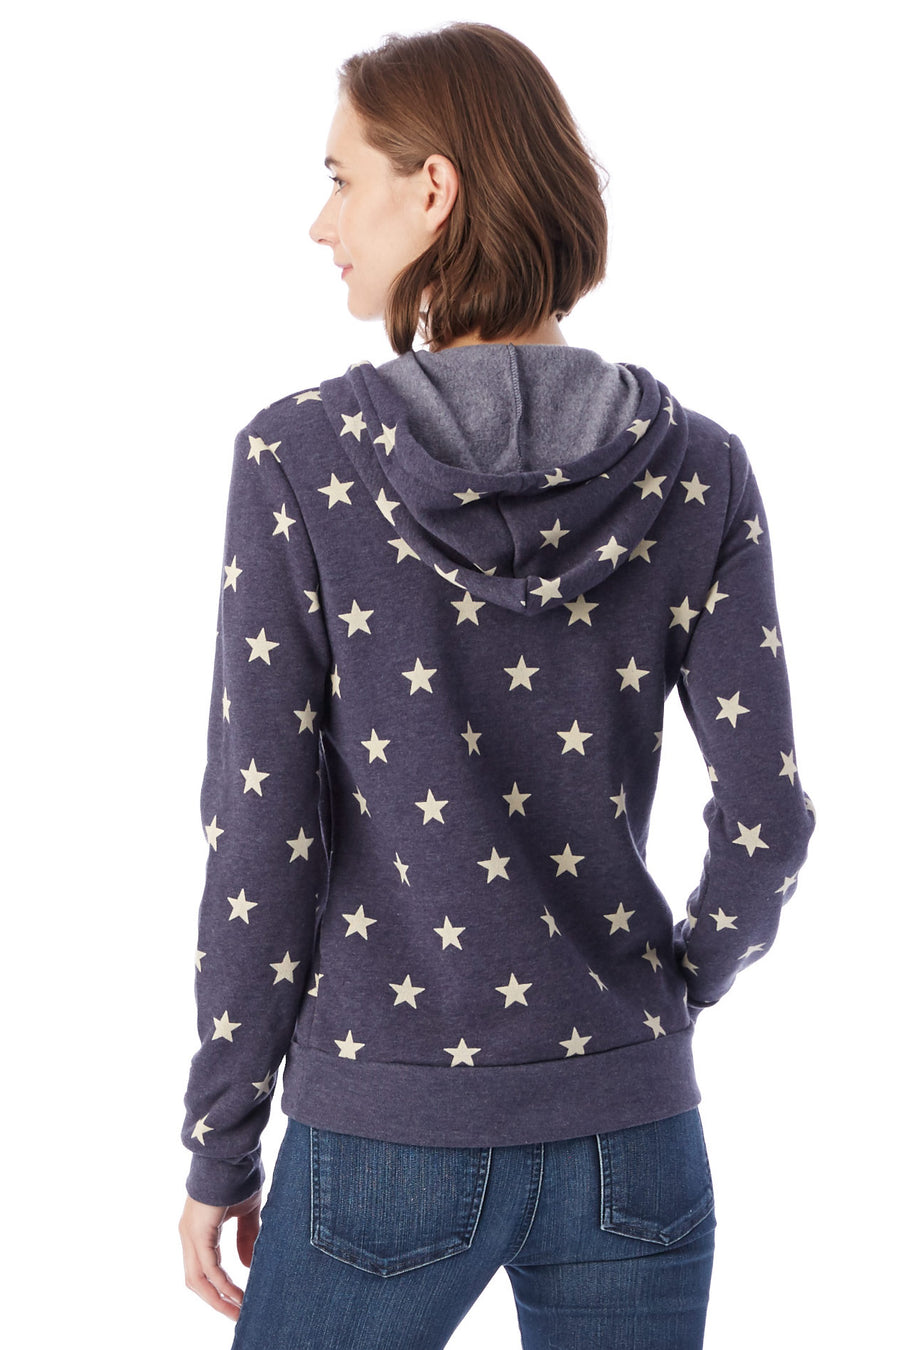 Athletics Eco-Fleece Hoodie - Navy Stars - Pavilion